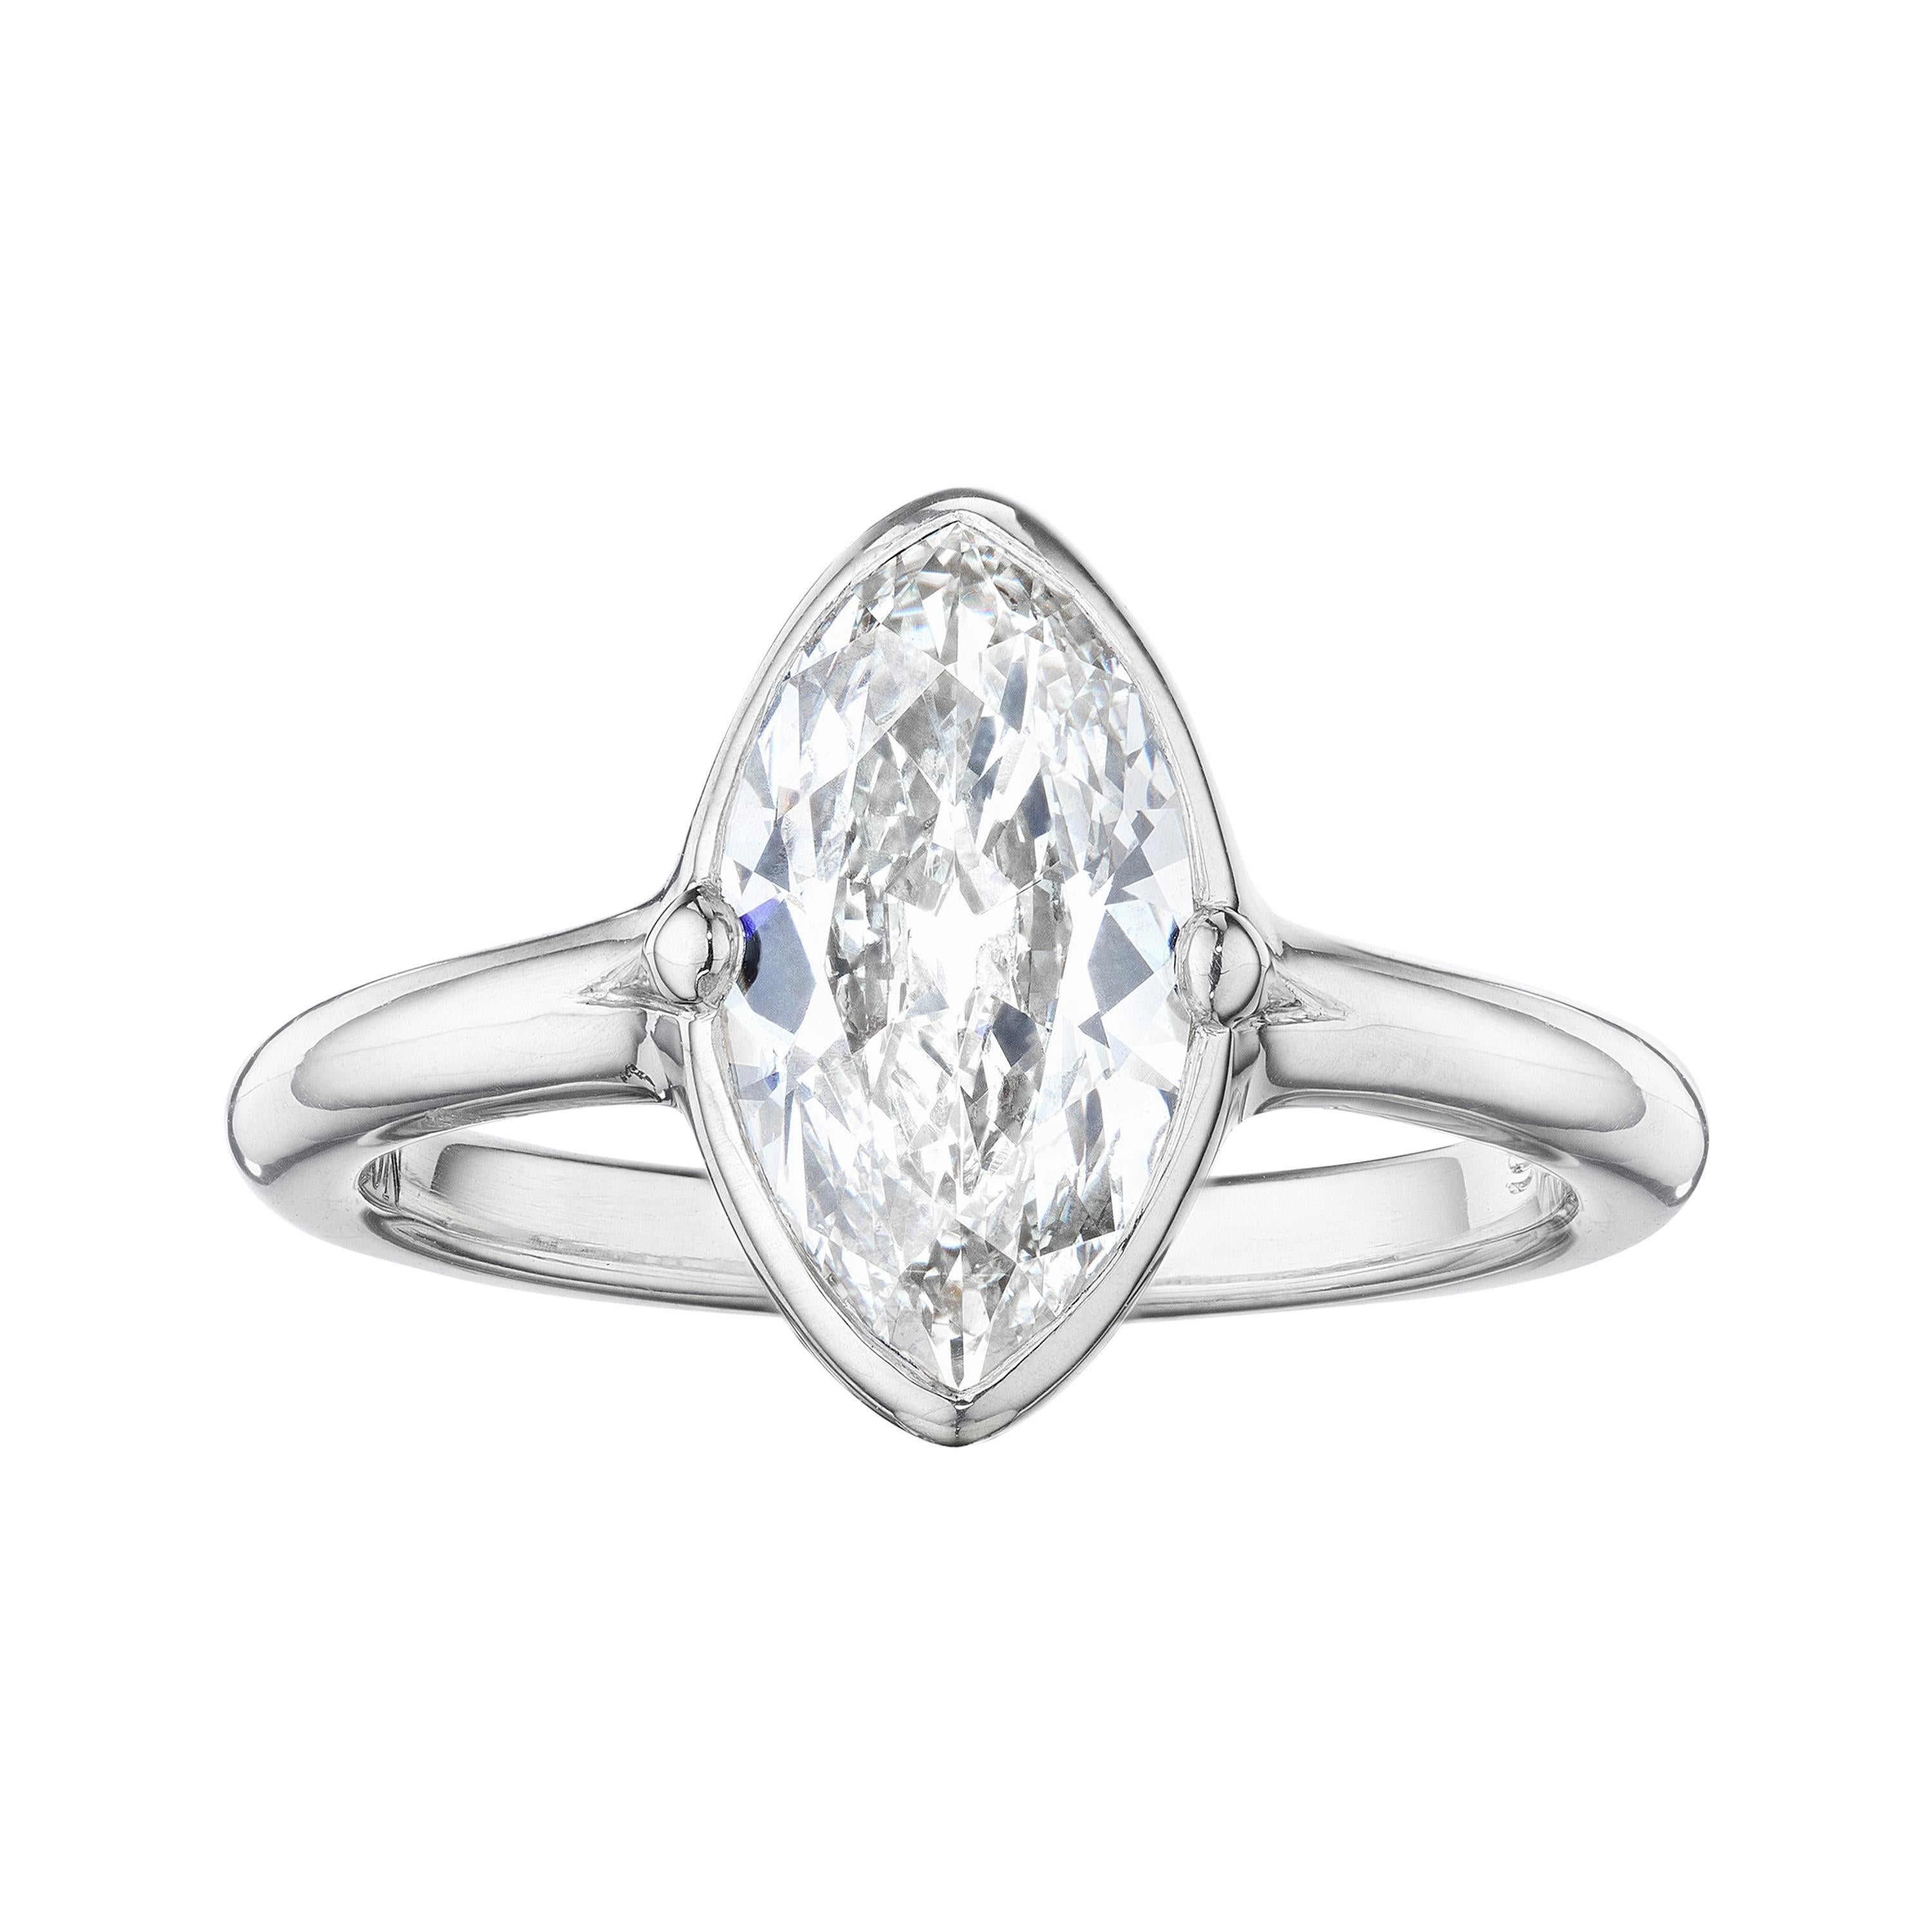 GIA Certified Diamond Navette Platinum Ring by Siegelson New York